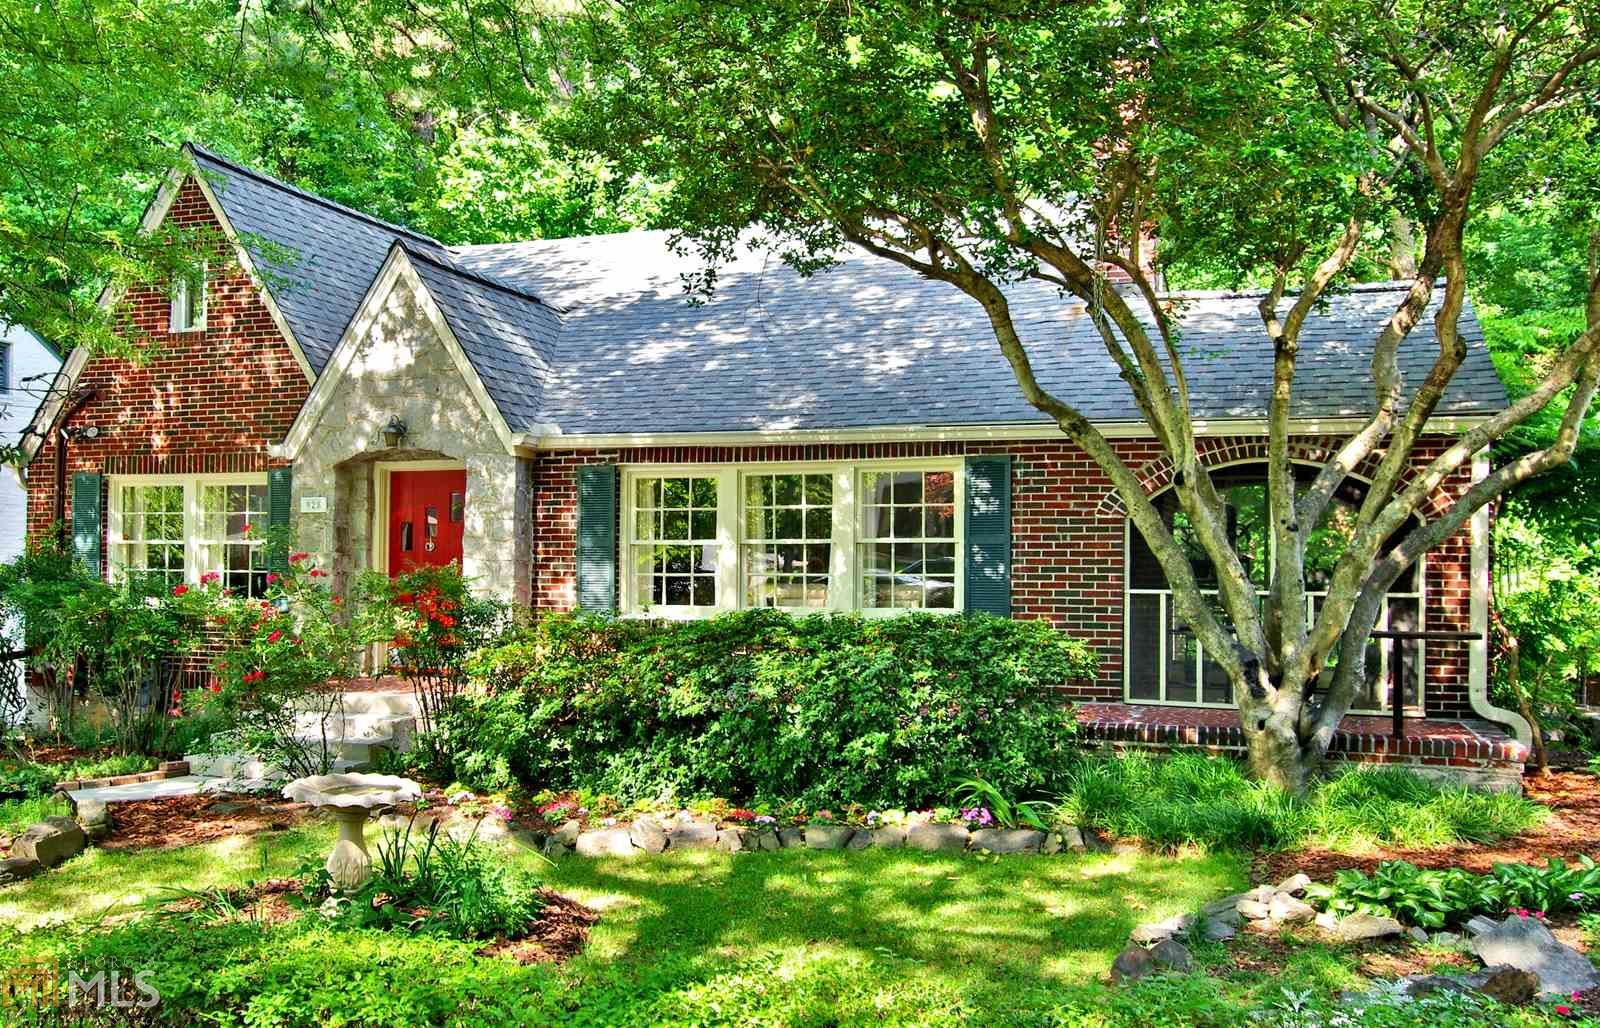 928 kings ct ne atlanta ga mls 8191172 ziprealty